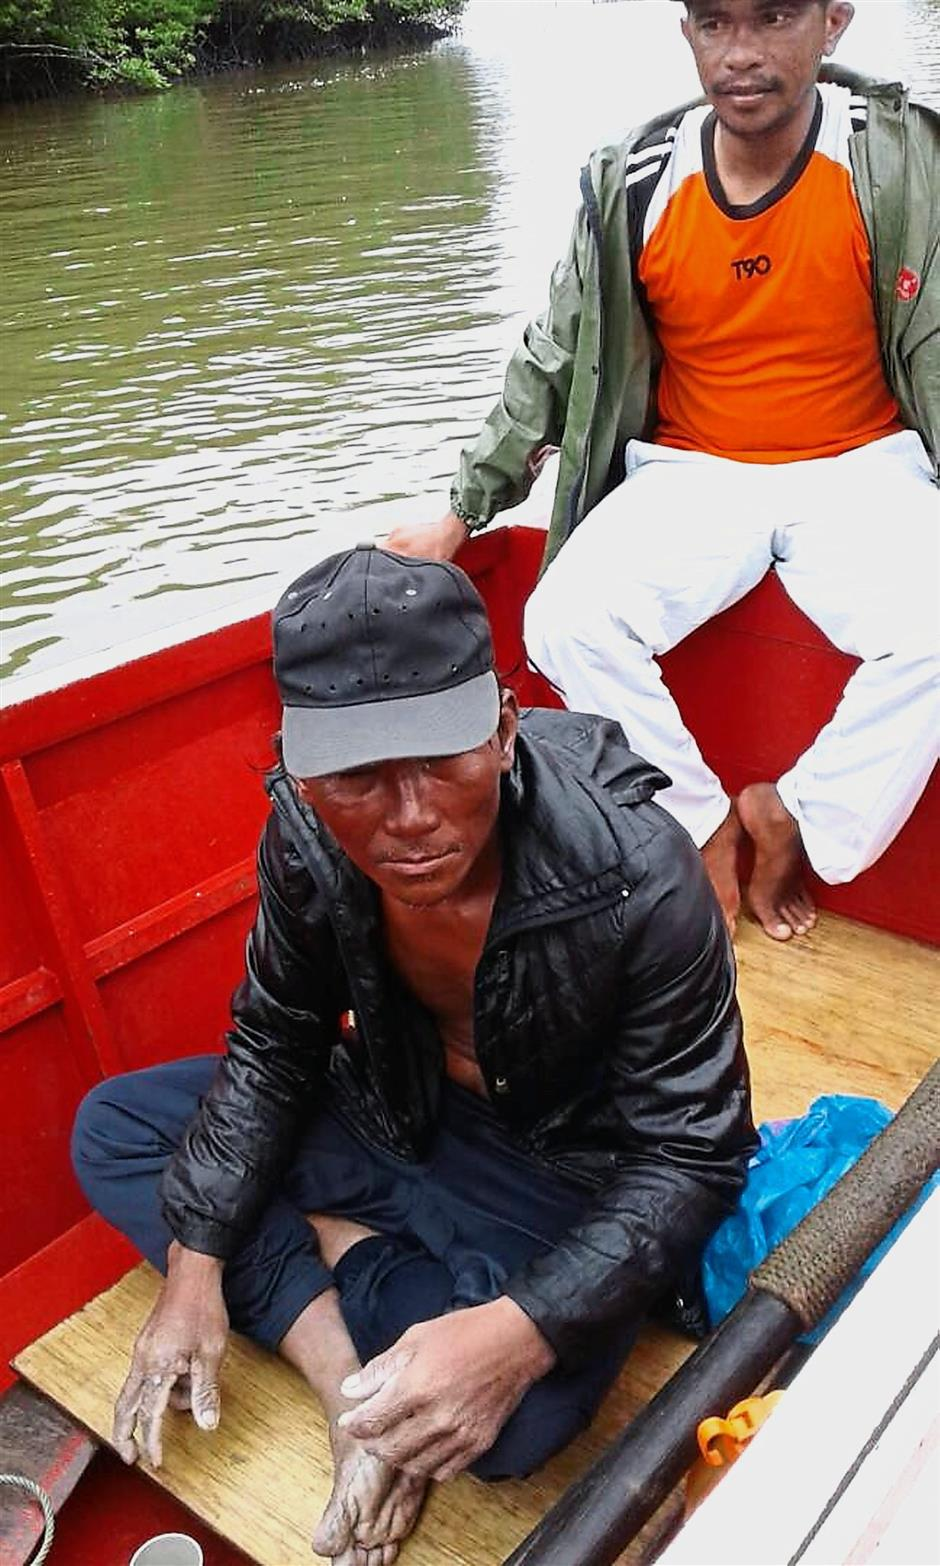 Mustapha Opong, who went missing in waters off Sabahs east coast Jambongan Island. was found safe after he was washed ashore to a village on Saturday morning,